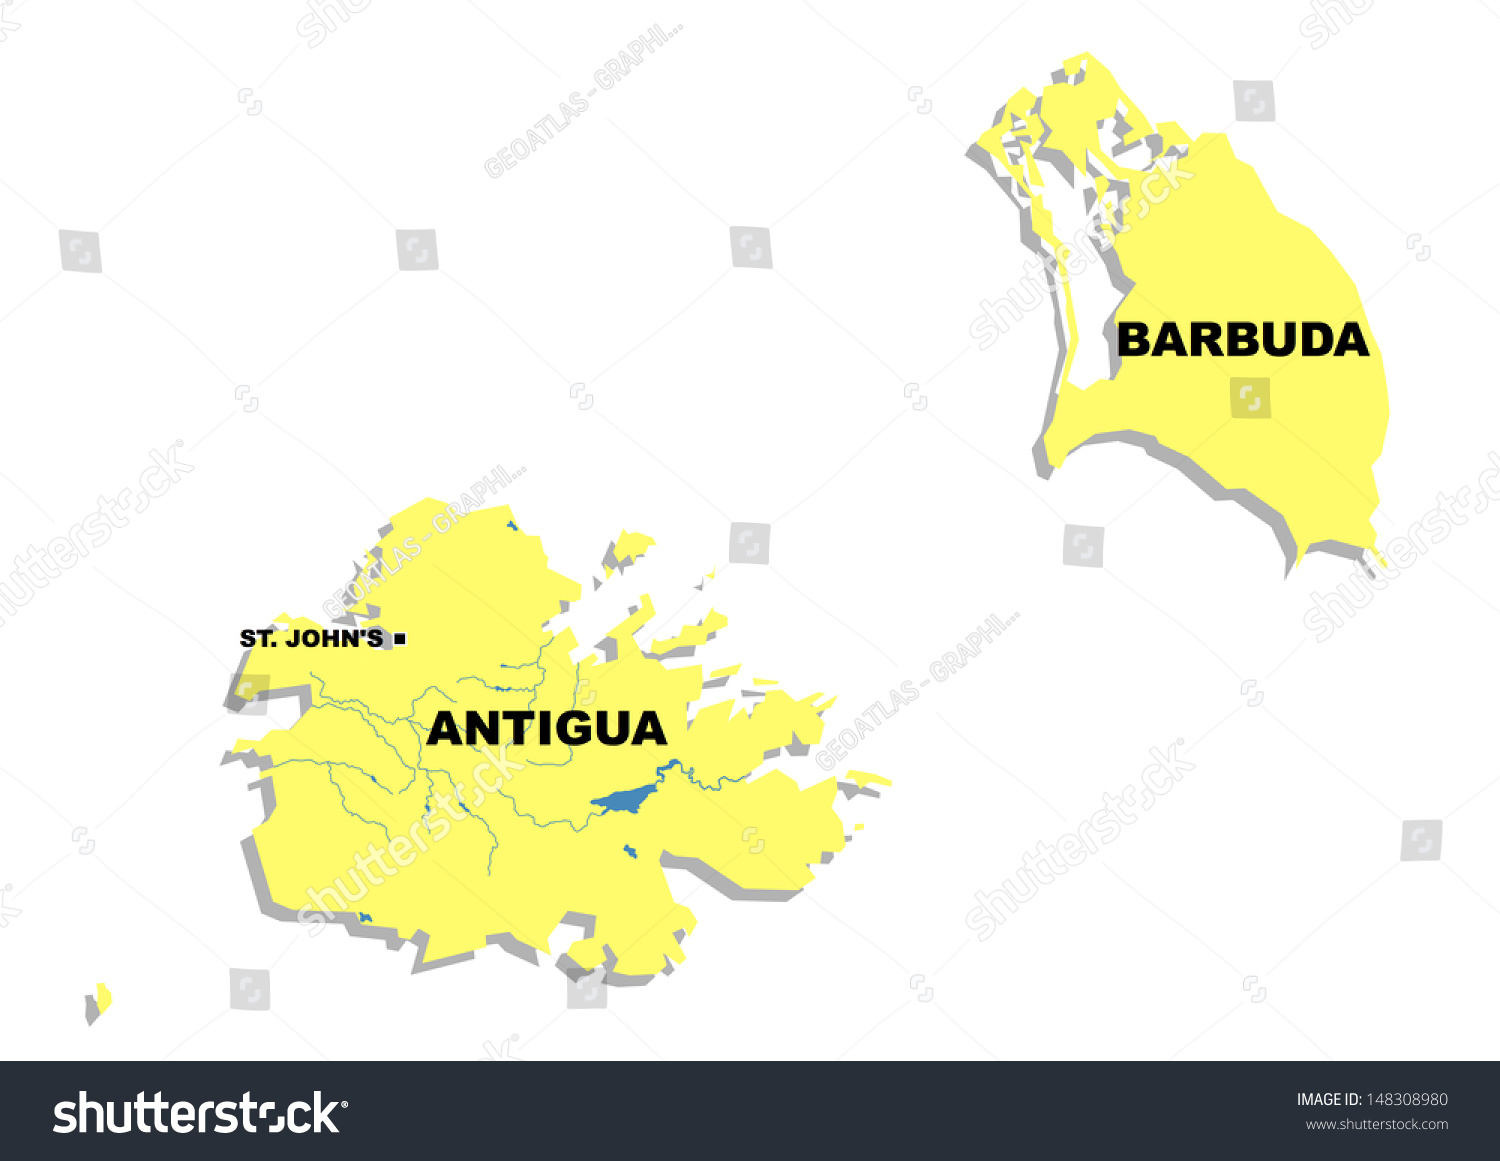 Administrative map of antigua and barbuda